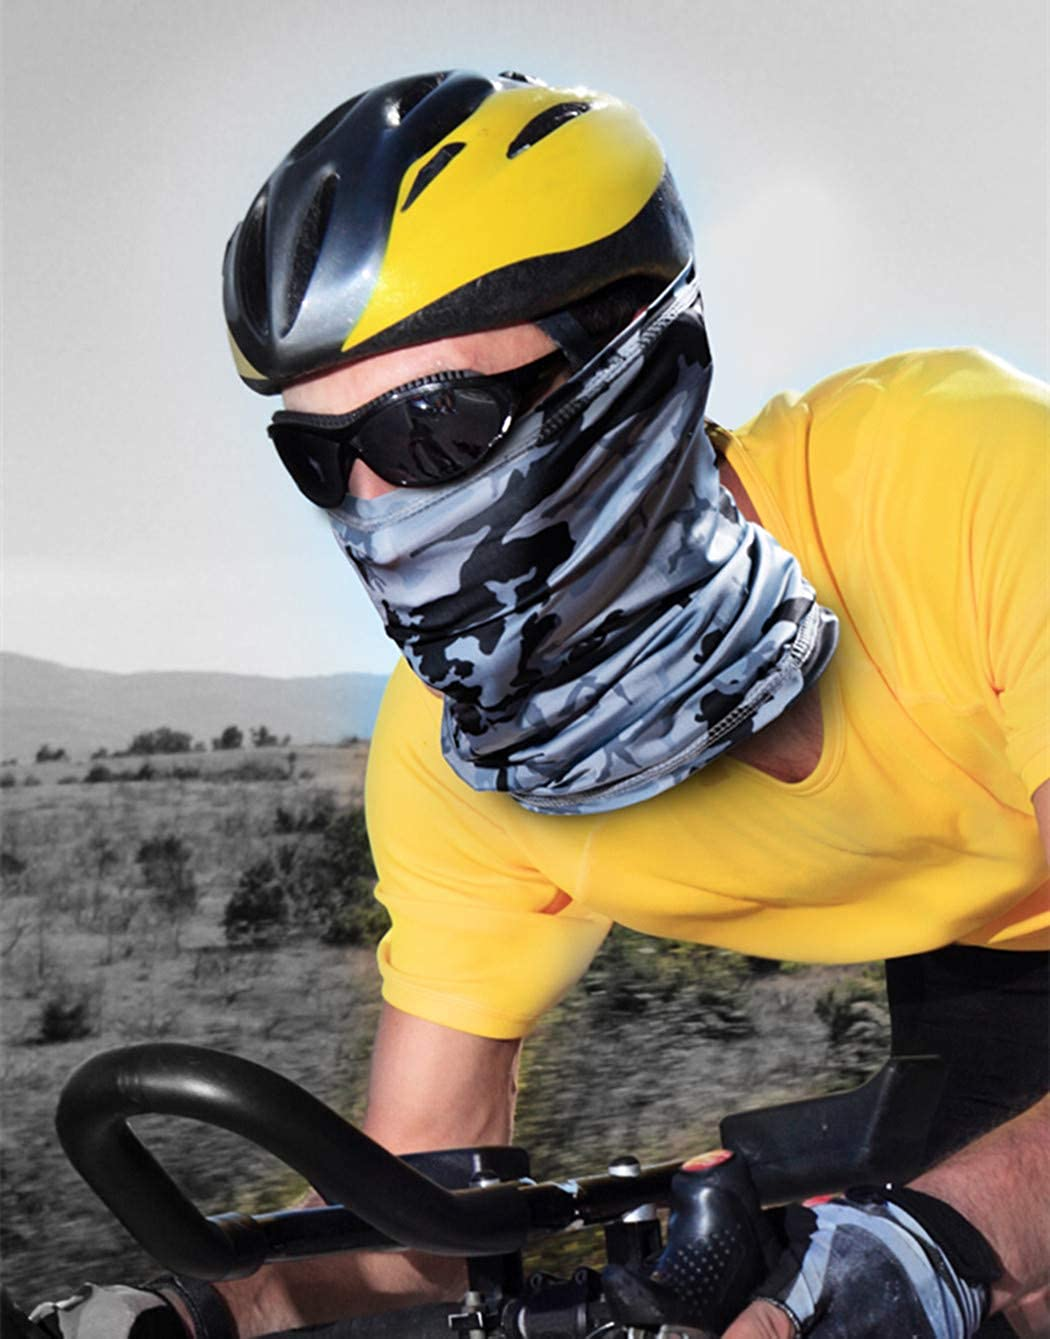 N-A Summer Bandana Face Mask Protection Neck Gaiter Face Mask Anti Dust Wind UV Face Cover Women Men Balaclava Face Mask for Cycling Running Hiking Sports 5pcs